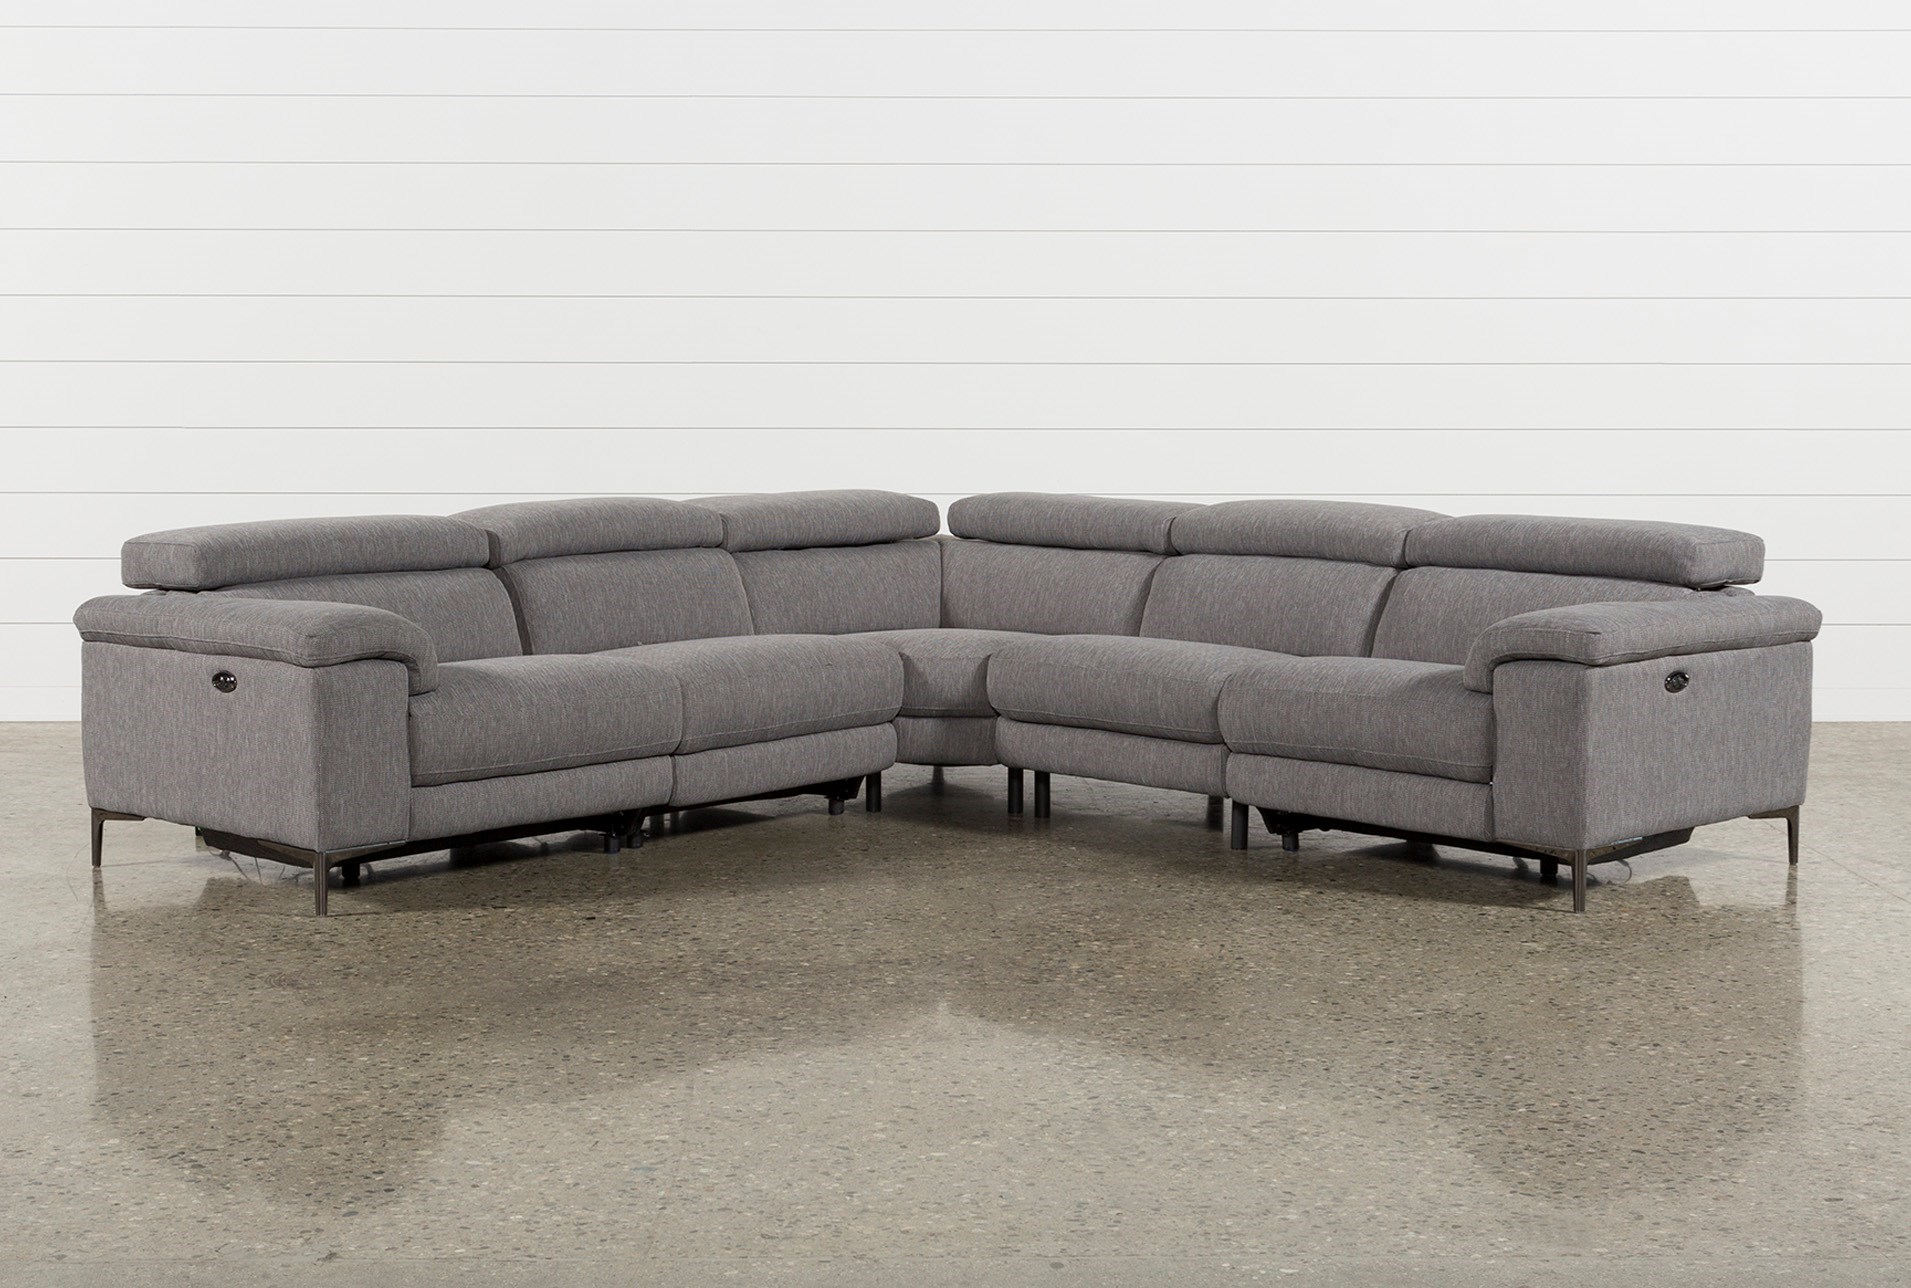 Talin grey ii 5 piece power reclining sectional qty 1 has been successfully added to your cart